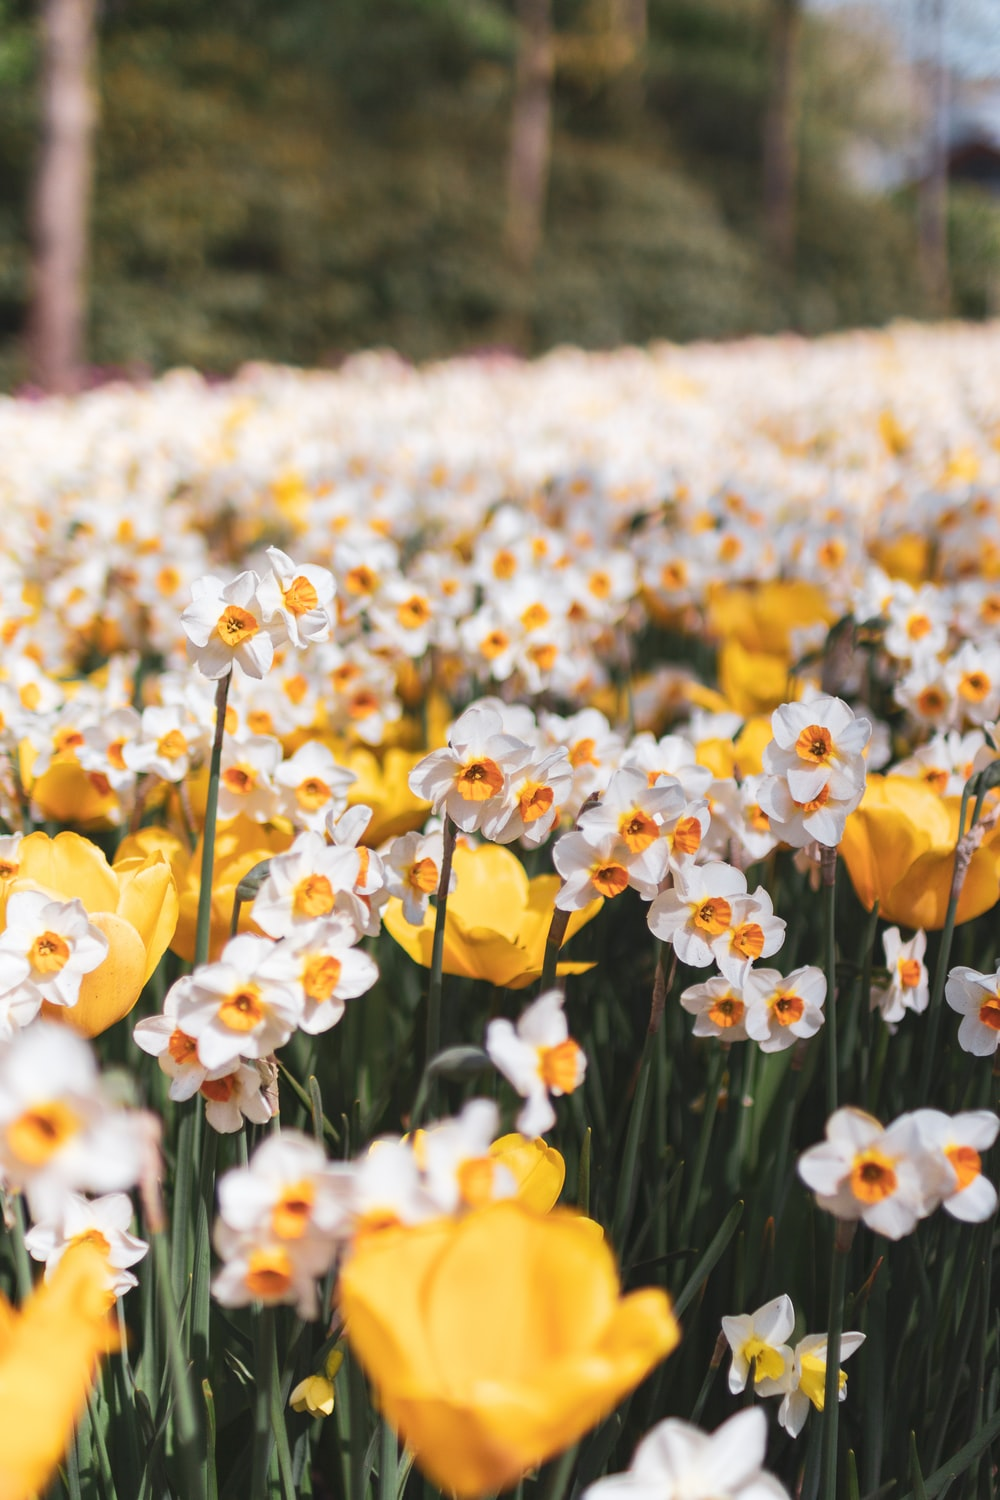 yellow and white flower field during daytime